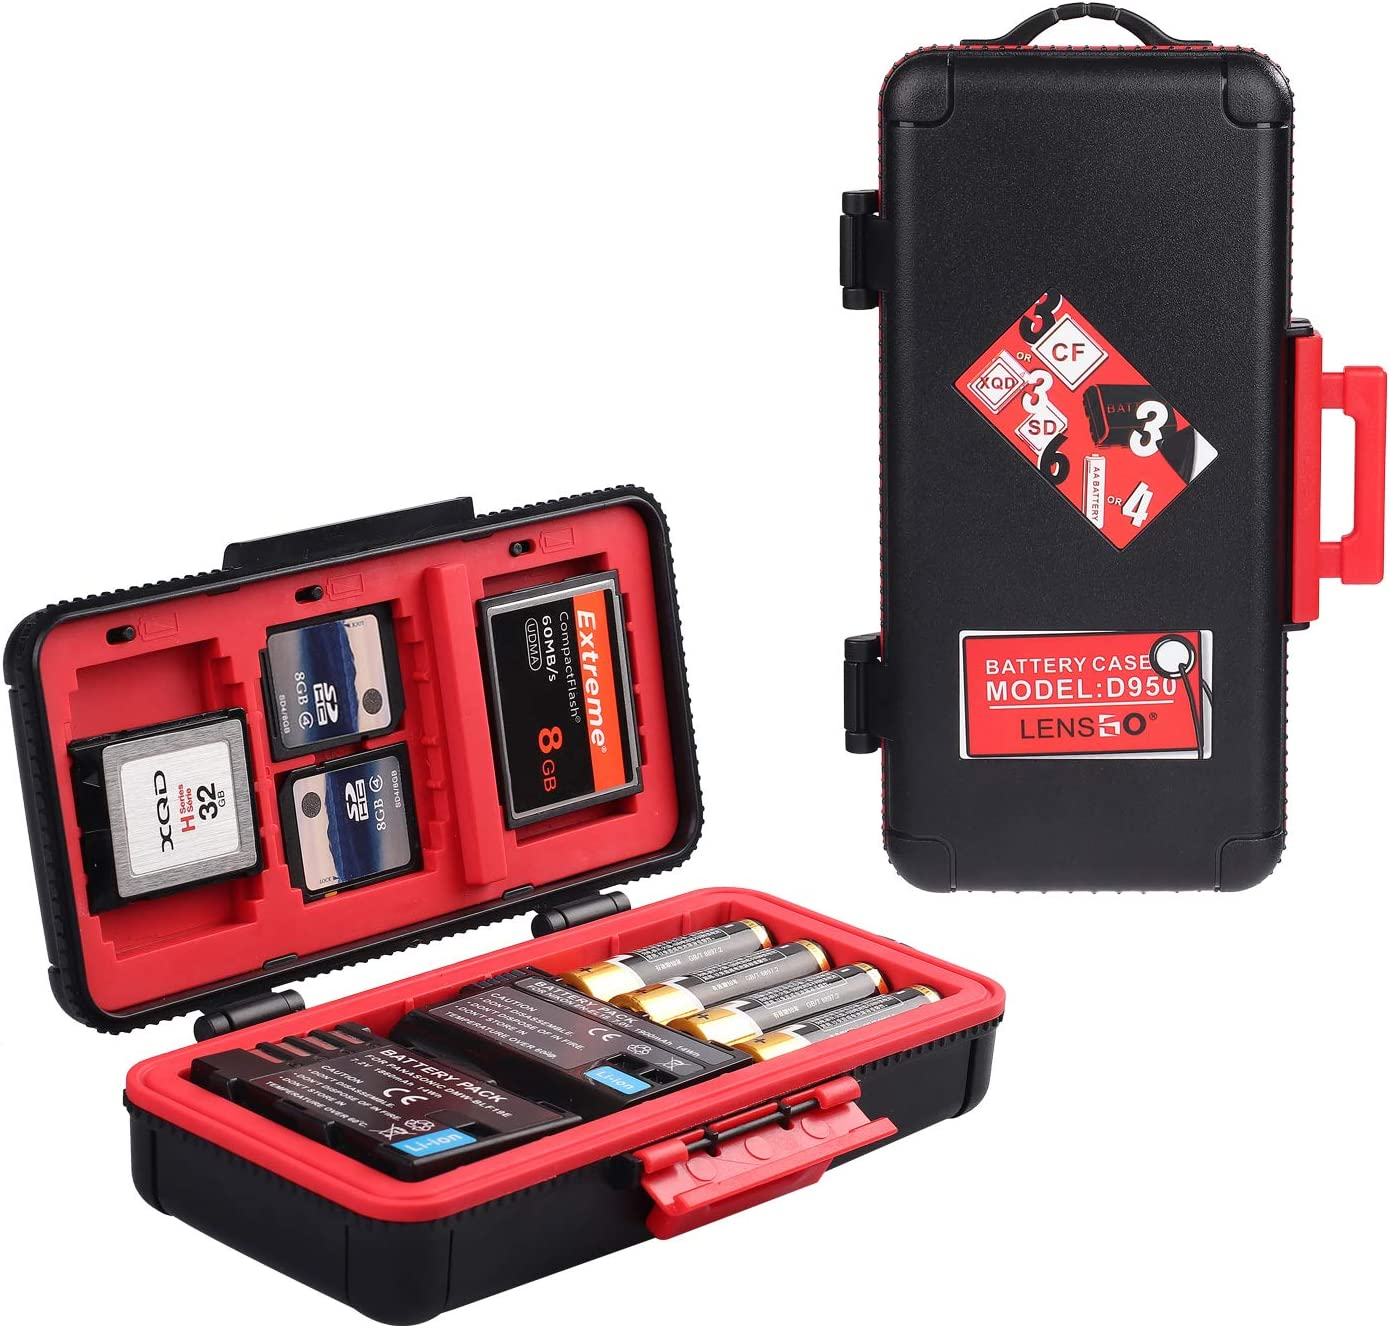 Professional Memory Card Case Water-Resistant Anti-Shock SD XQD CF Compact Flash Camera Battery AA   Media Storage Holder Organizer Photography ...